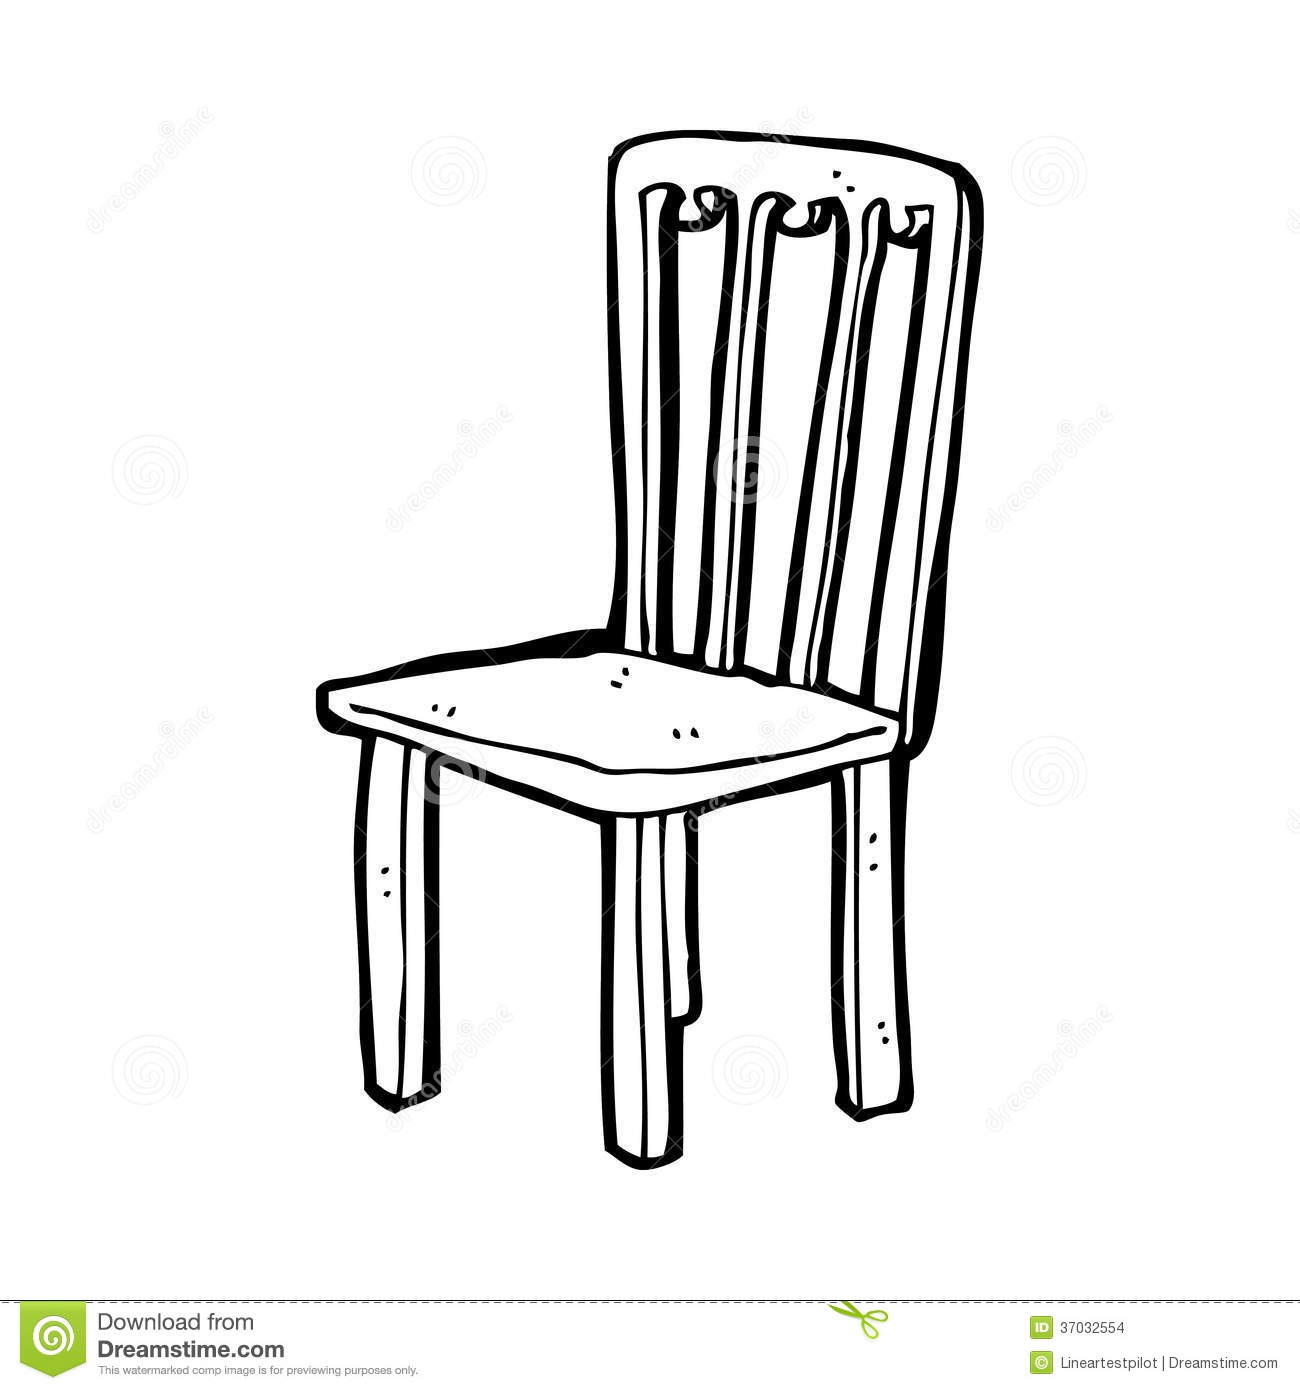 Cartoon old chair stock illustration illustration of for Sillas para colorear